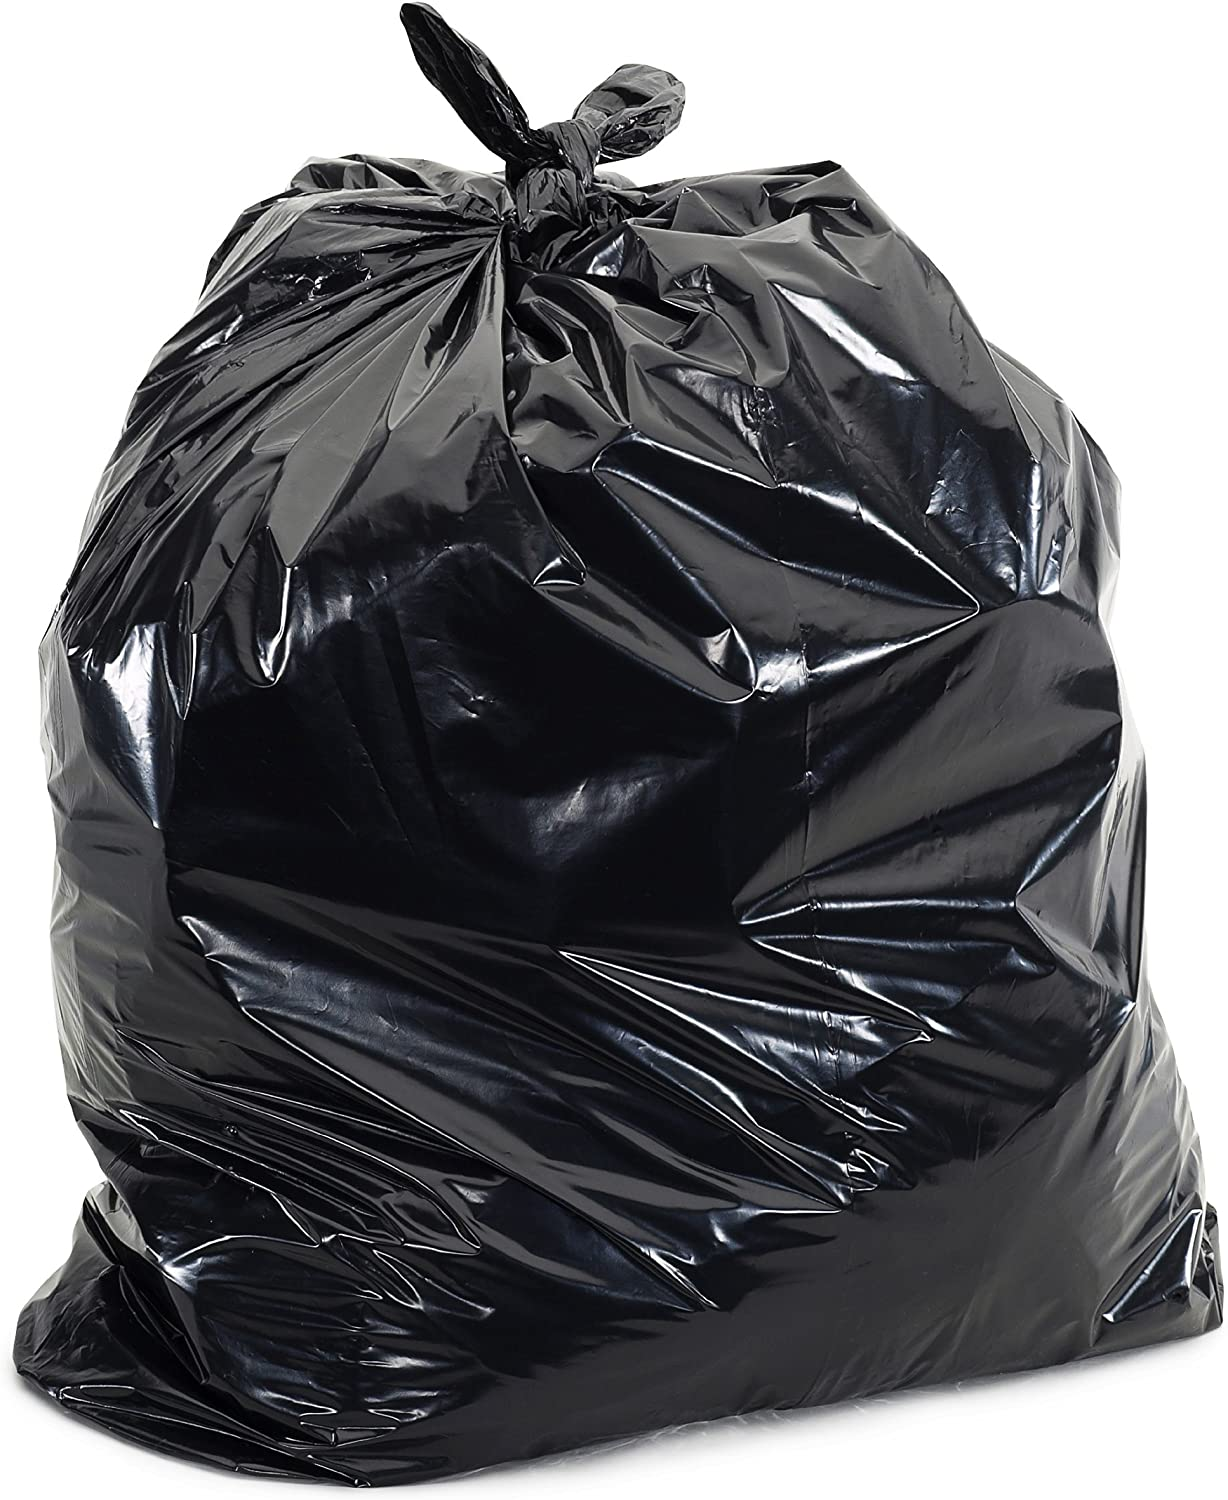 Plasticplace - W14LDB 12-16 Gallon Trash Bags ¦ 1.2 Mil ¦ Black Garbage Can Liners ¦ 24